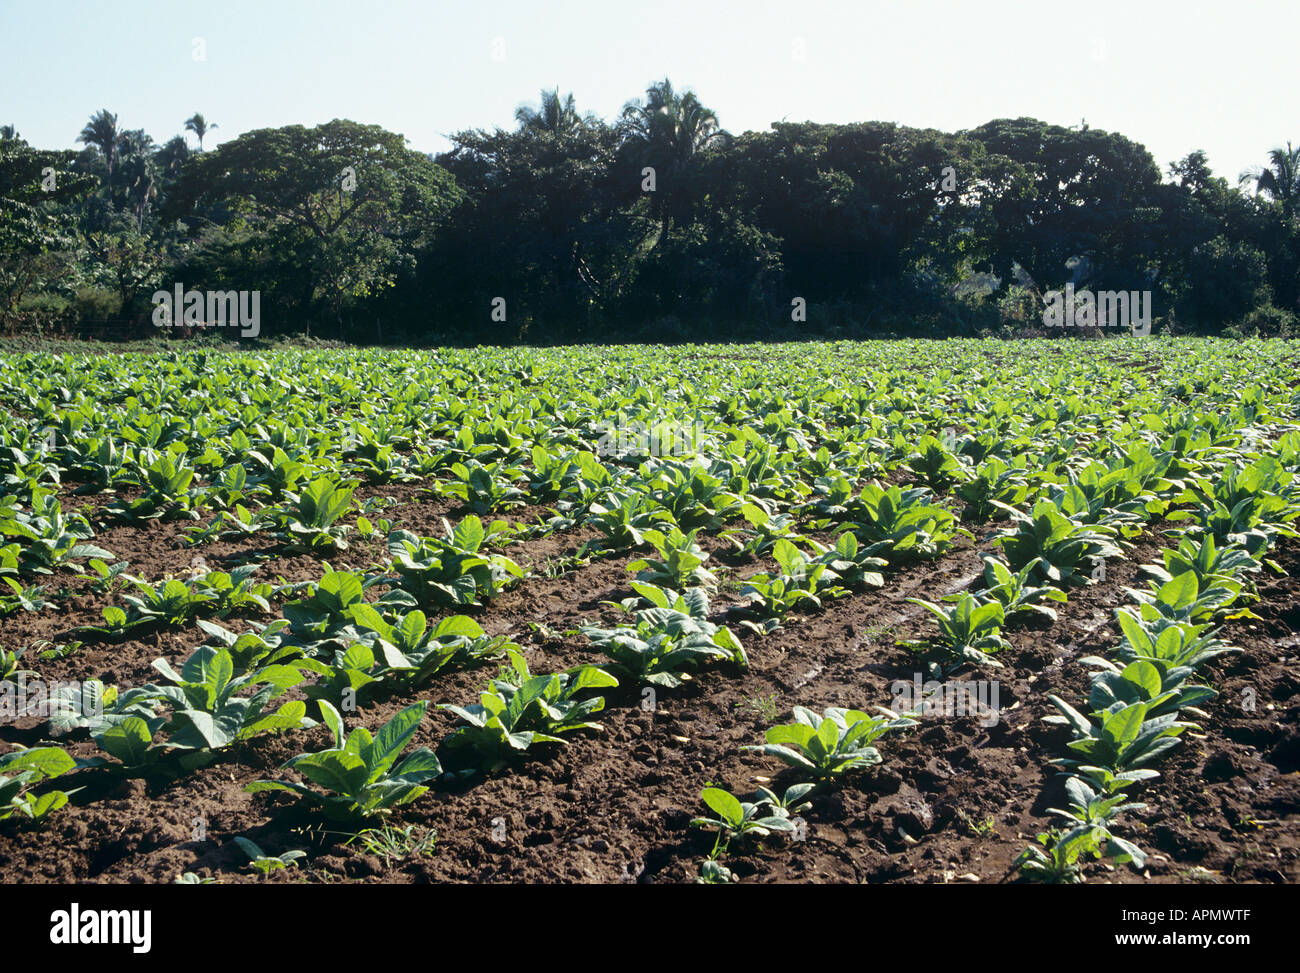 Rows of young tobacco plants their green leaves shining in the sun contrast with the dark green of the trees on the hillside at the edge of this field near Las Varas - Stock Image